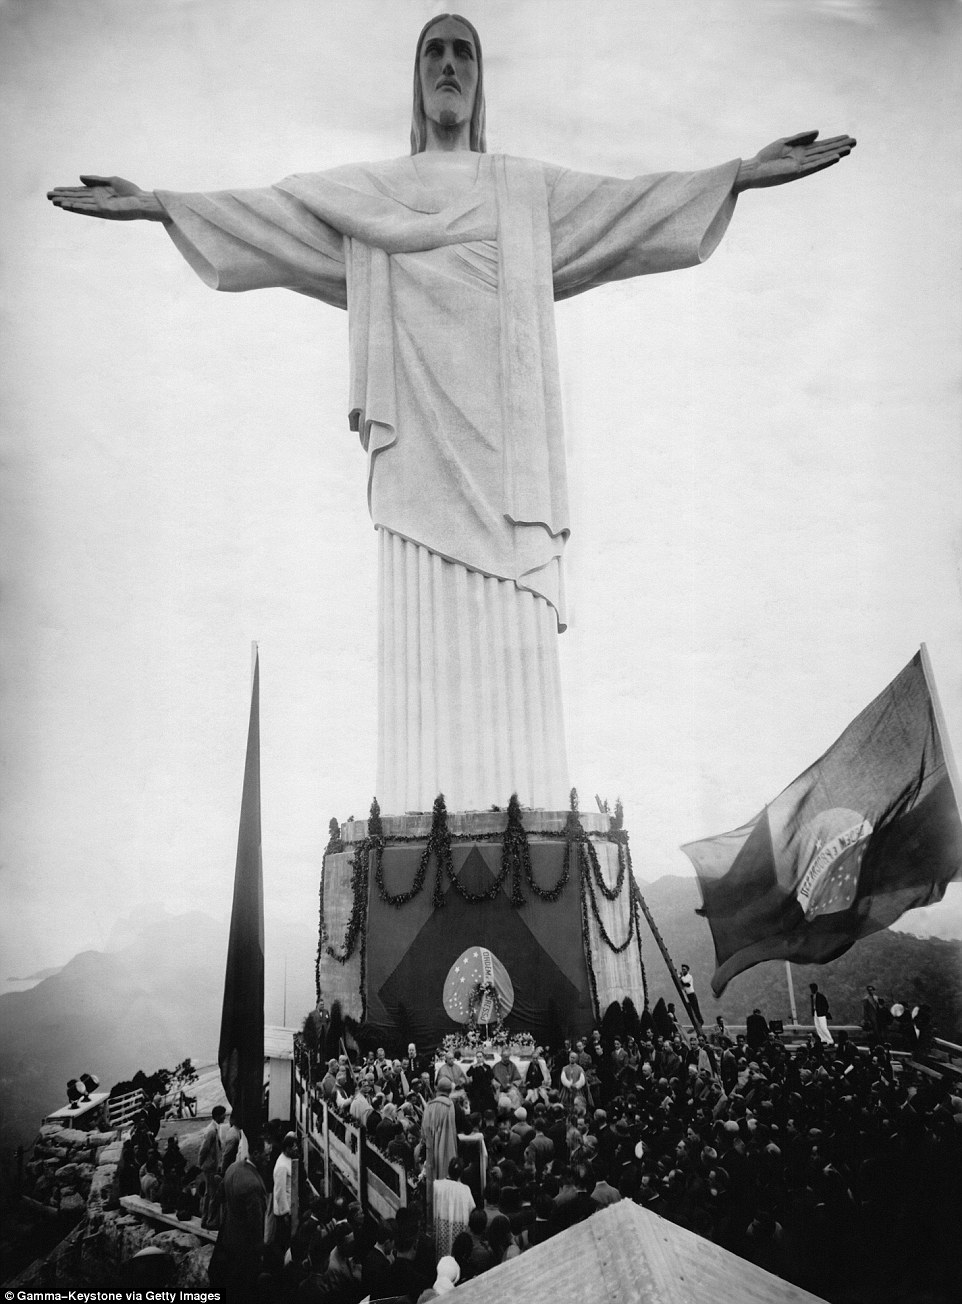 The statue during the opening on October 12, 1931 after almost a decade of designs and construction